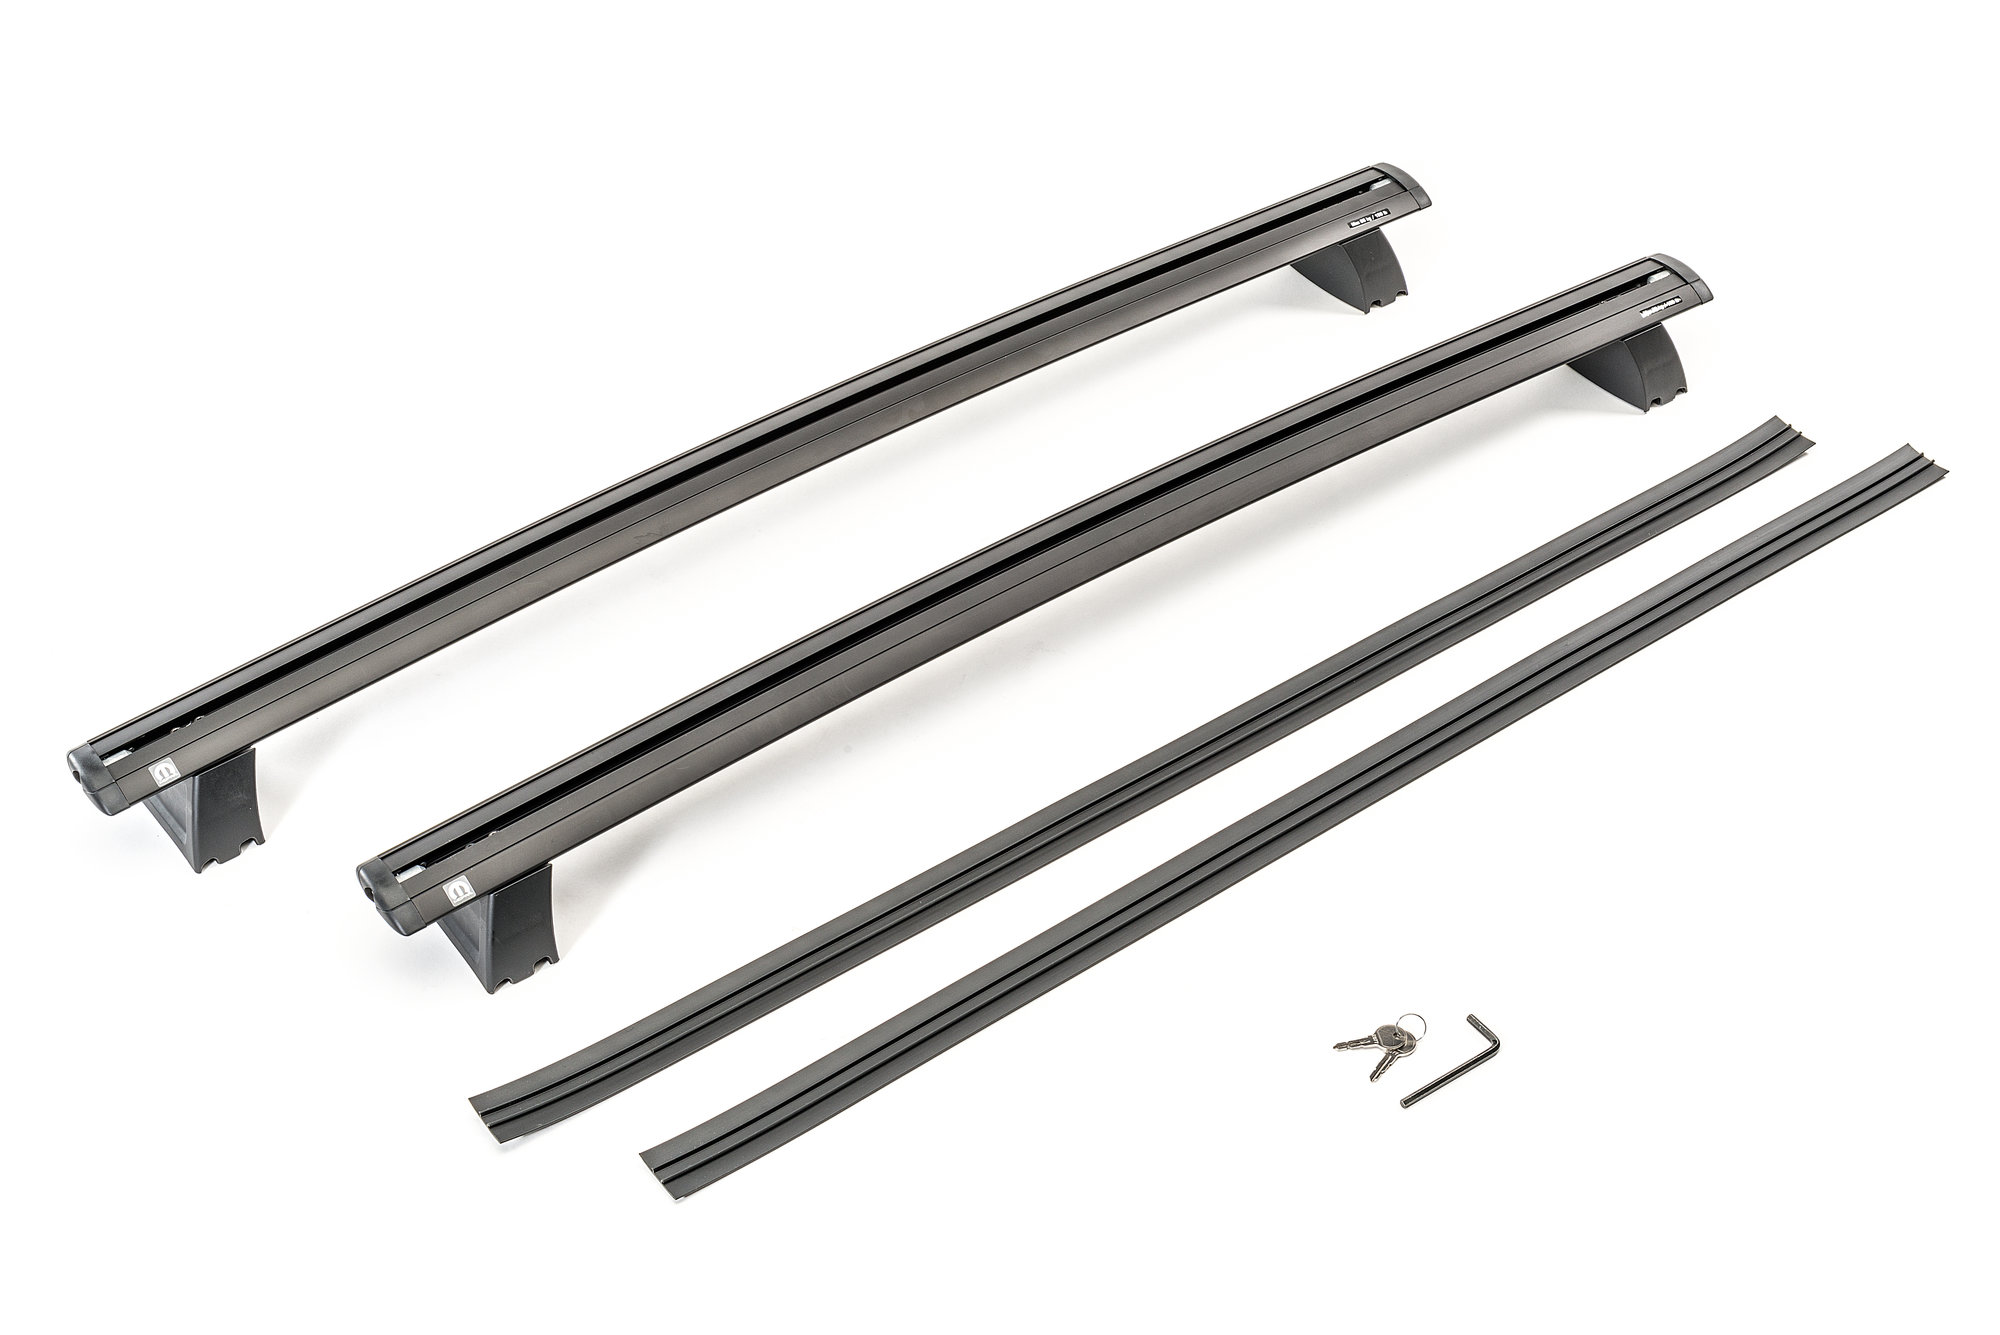 Mopar 82212072AD Roof Rack Cross Rails for 11-18 Jeep